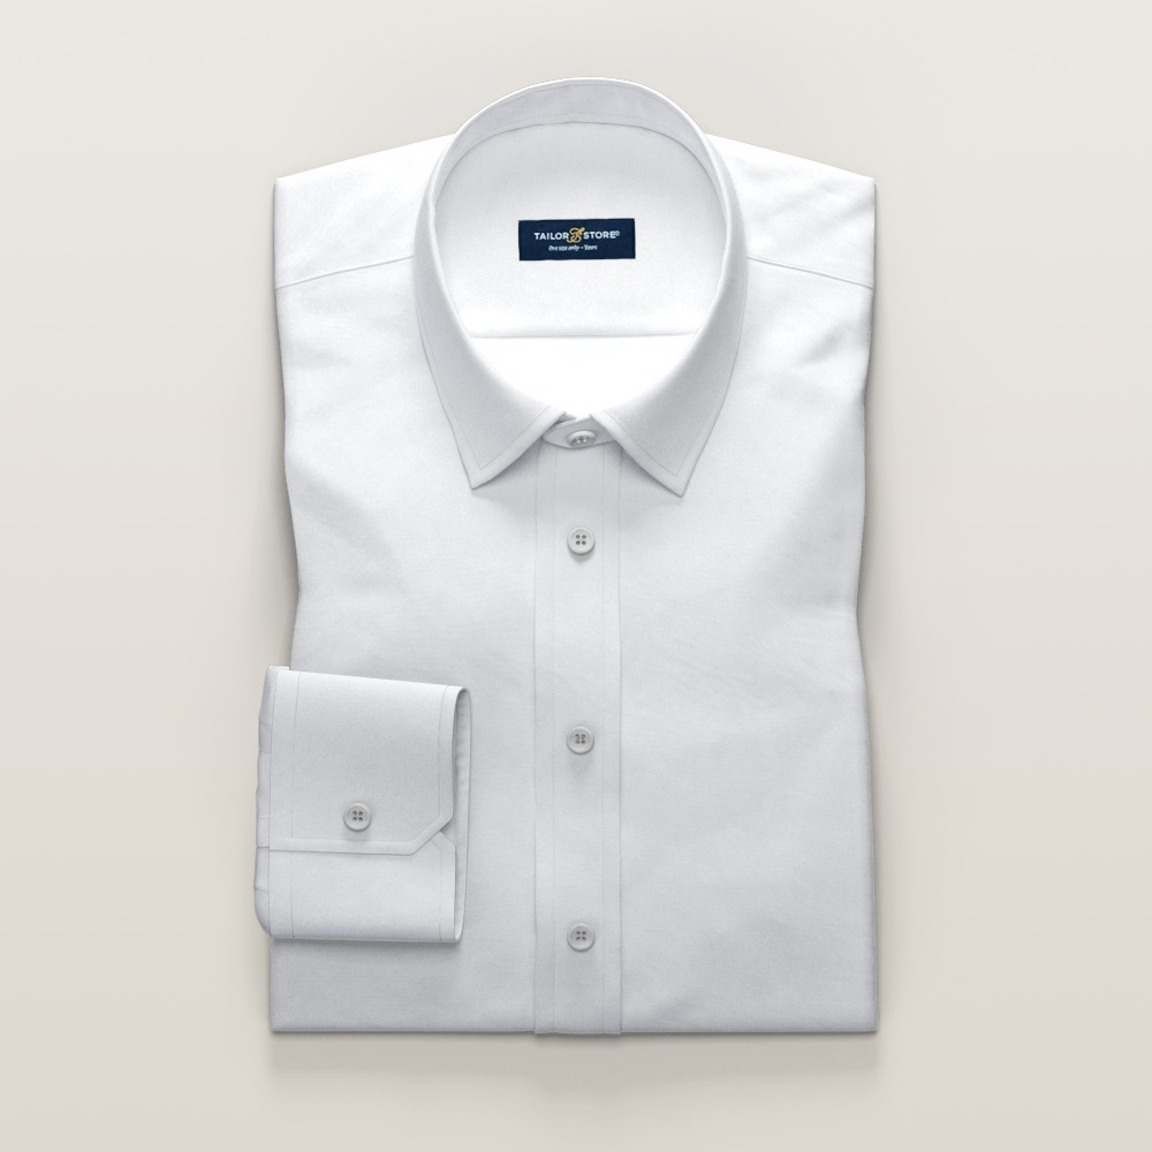 White Non-Iron business shirt